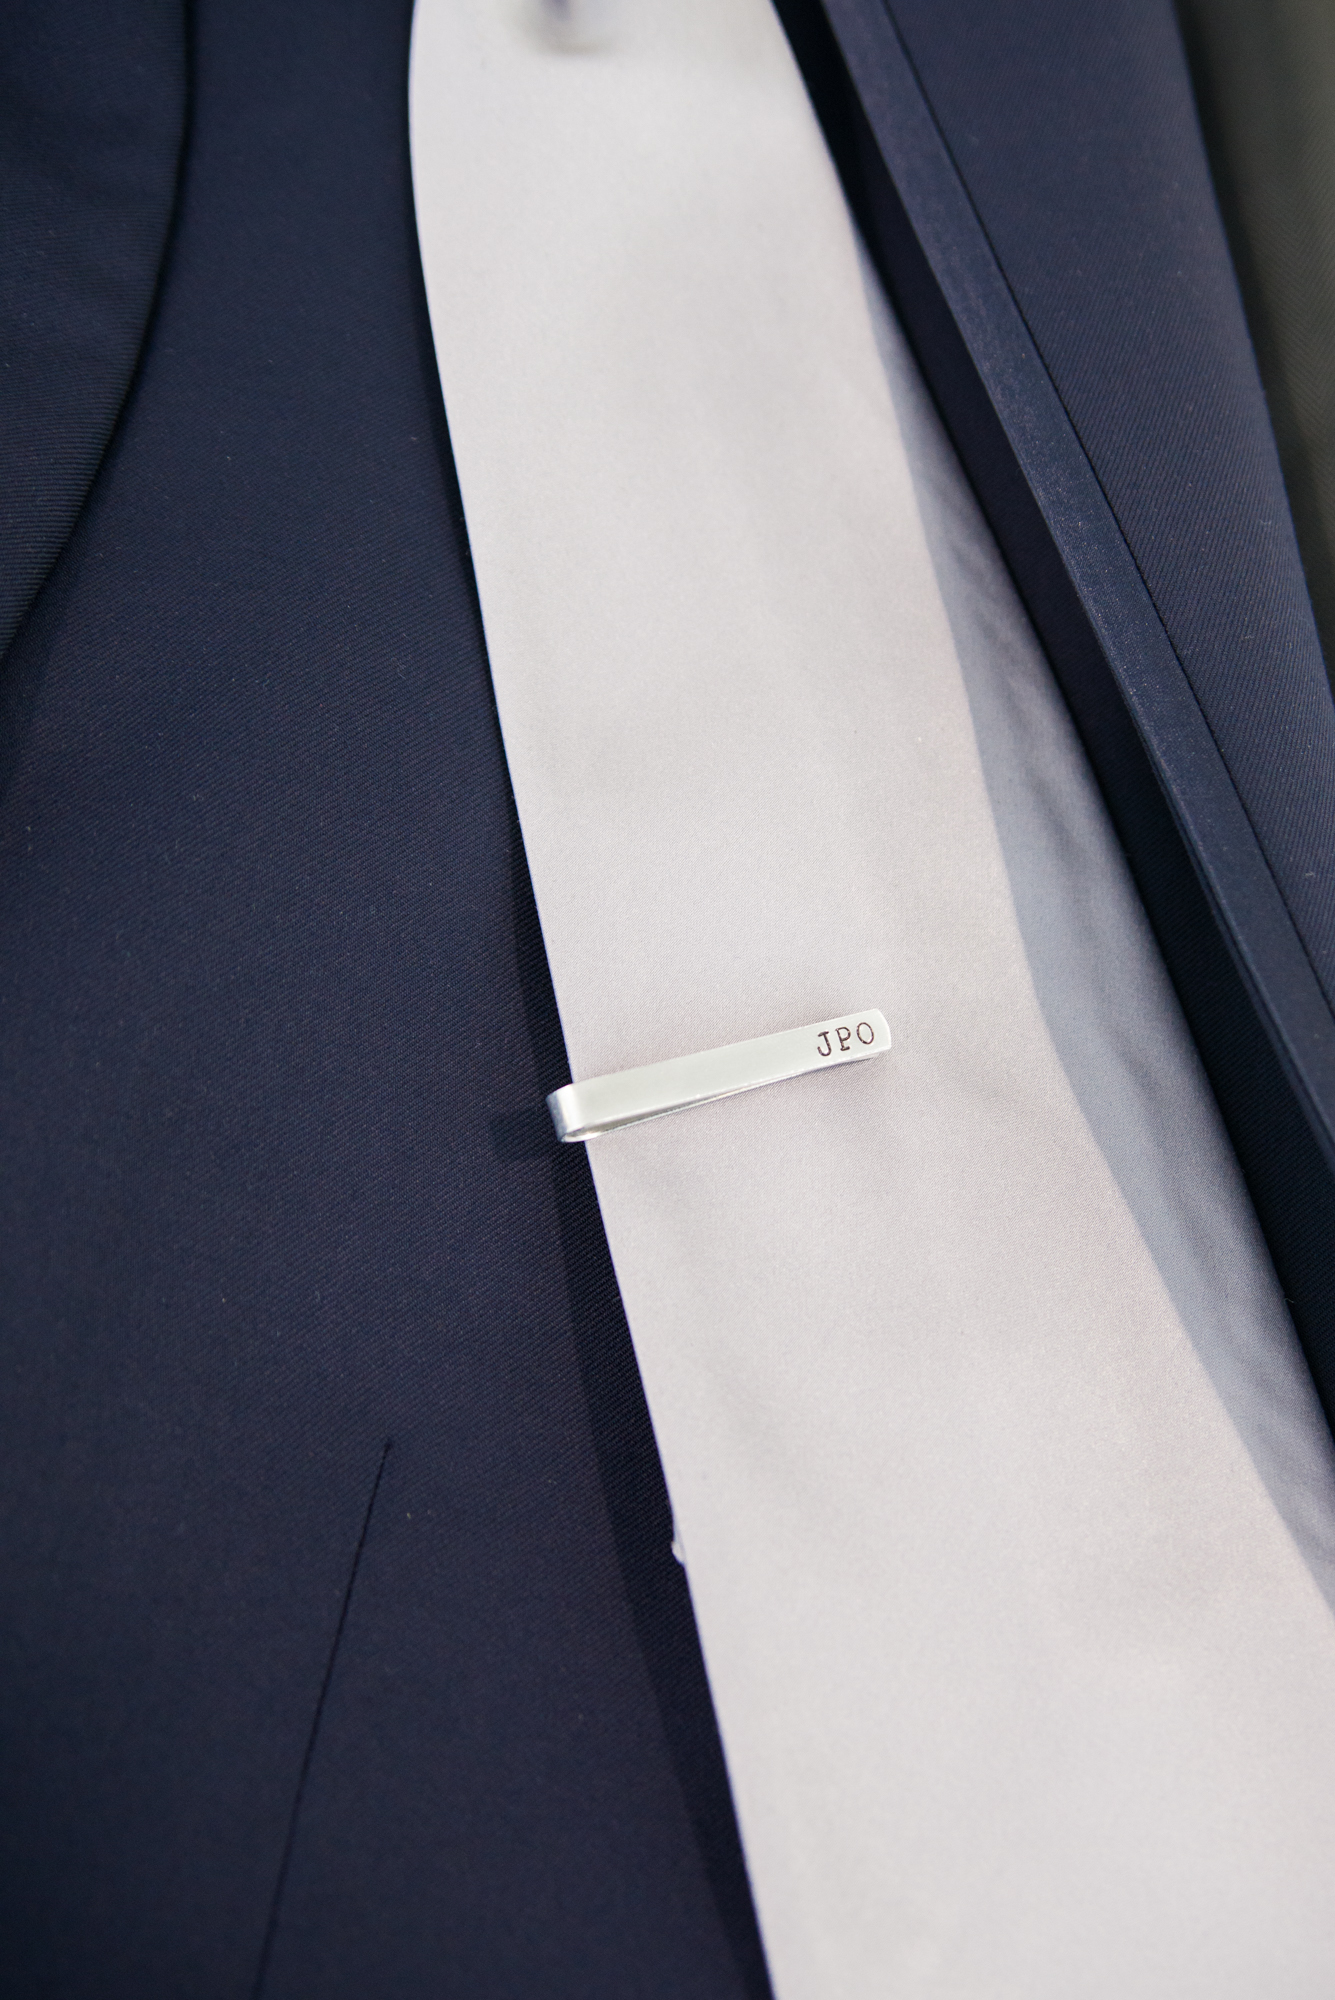 Groom's Gift Engraved Tie Clip - Travel Themed Wedding - Caitlin Gerres Photography